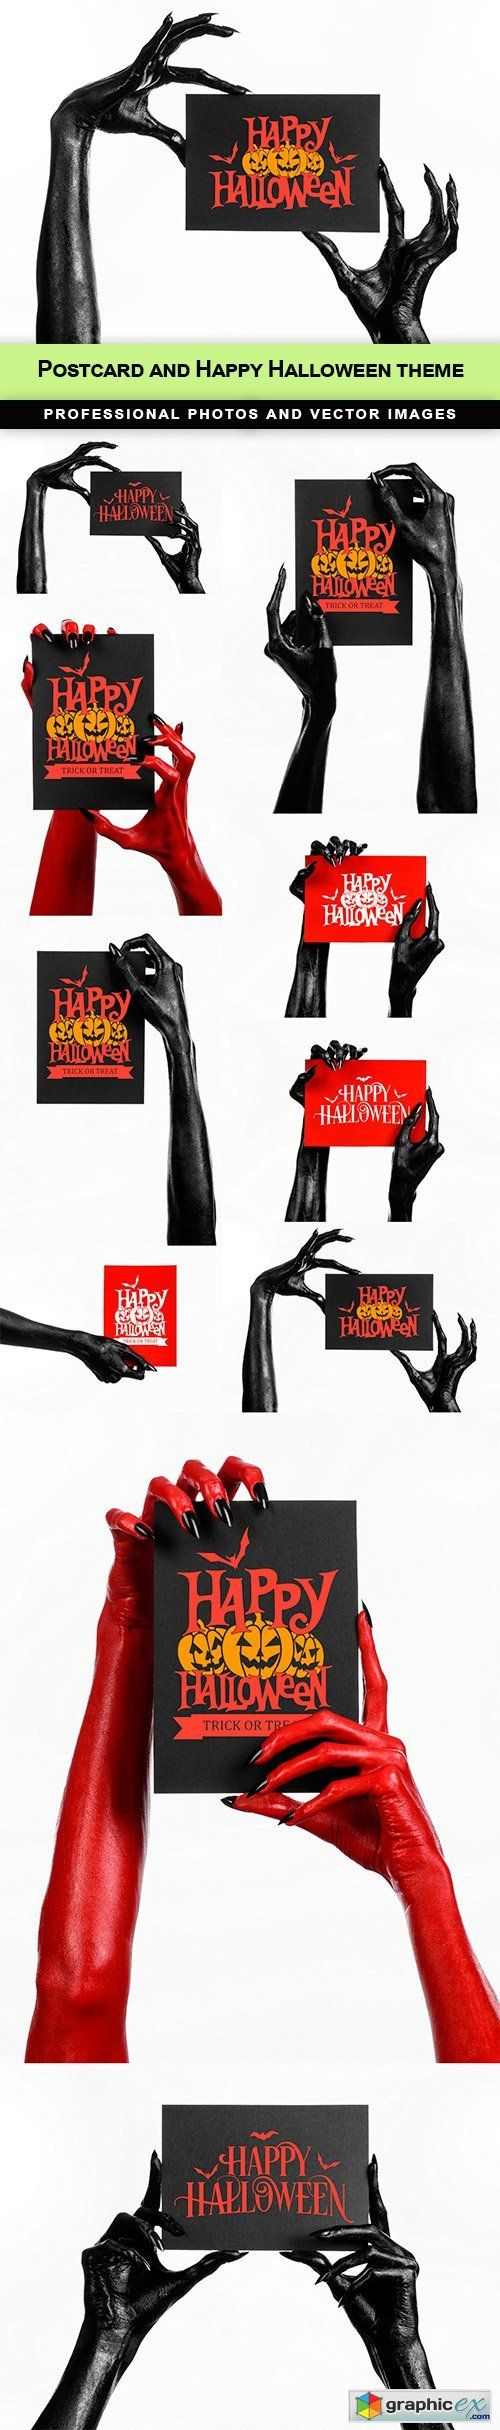 Postcard and Happy Halloween theme  10 UHQ JPEG  stock images